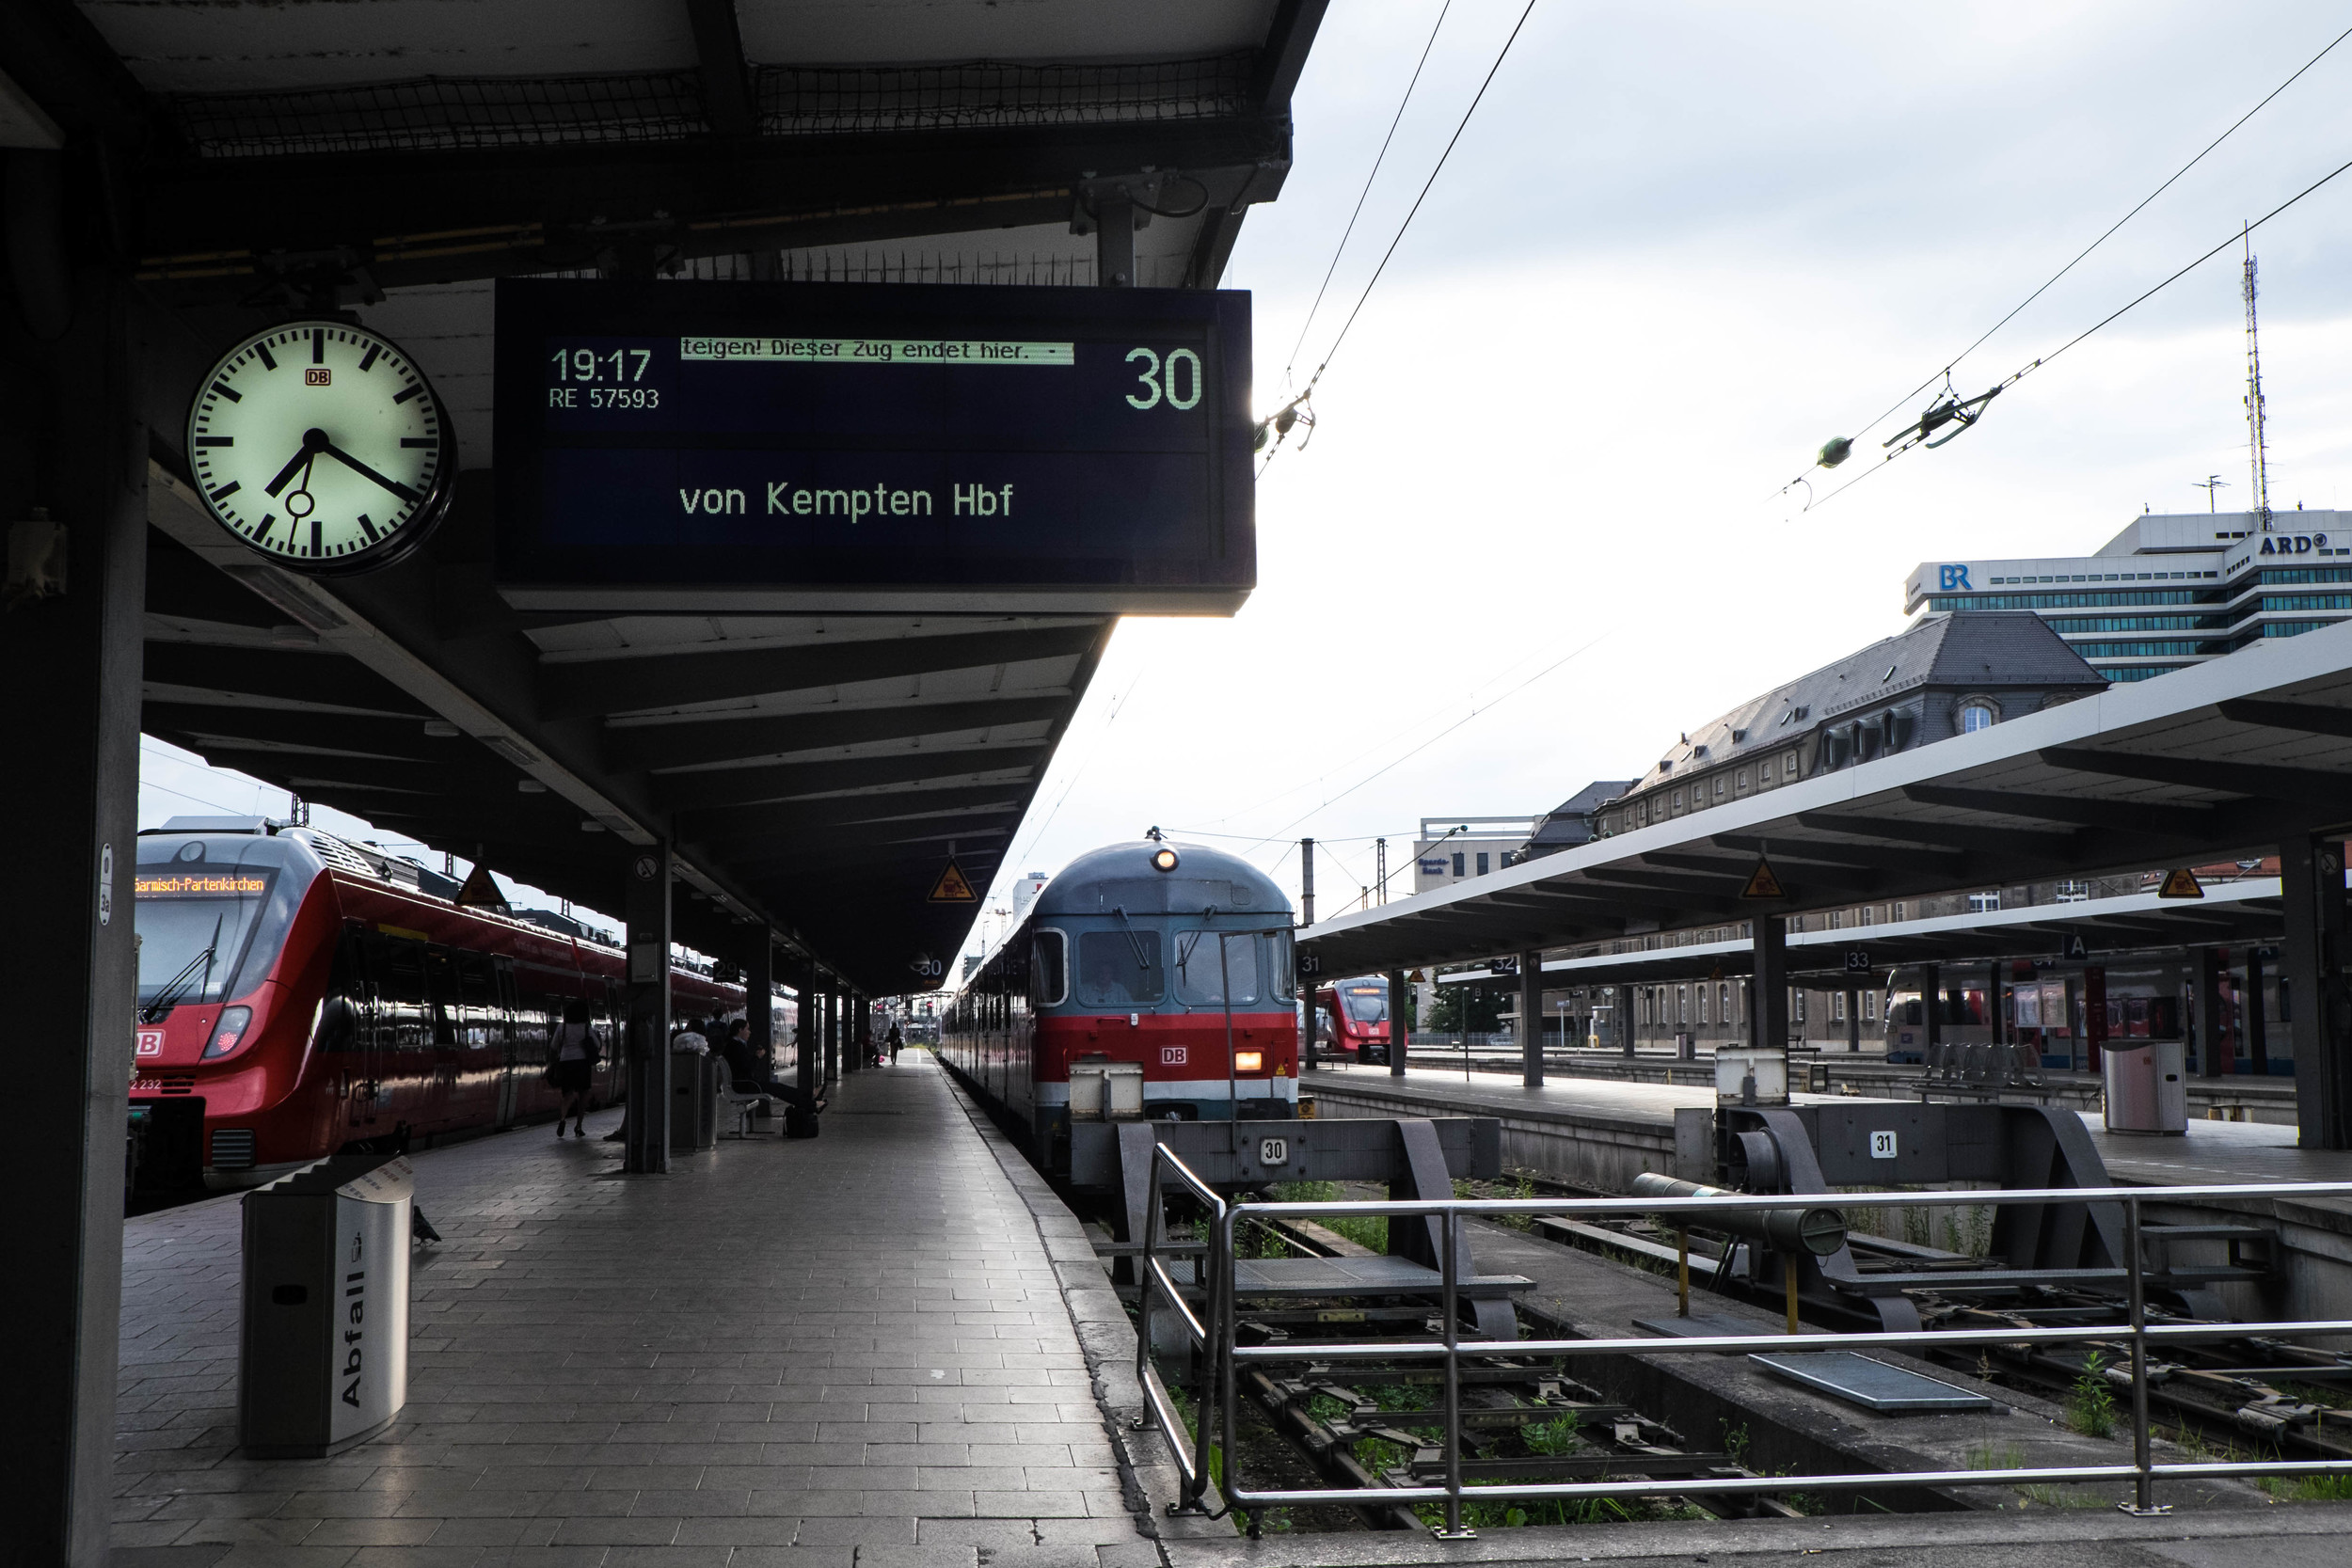 Train transfer at Munich station to Seeg via von Kempten Hbf.